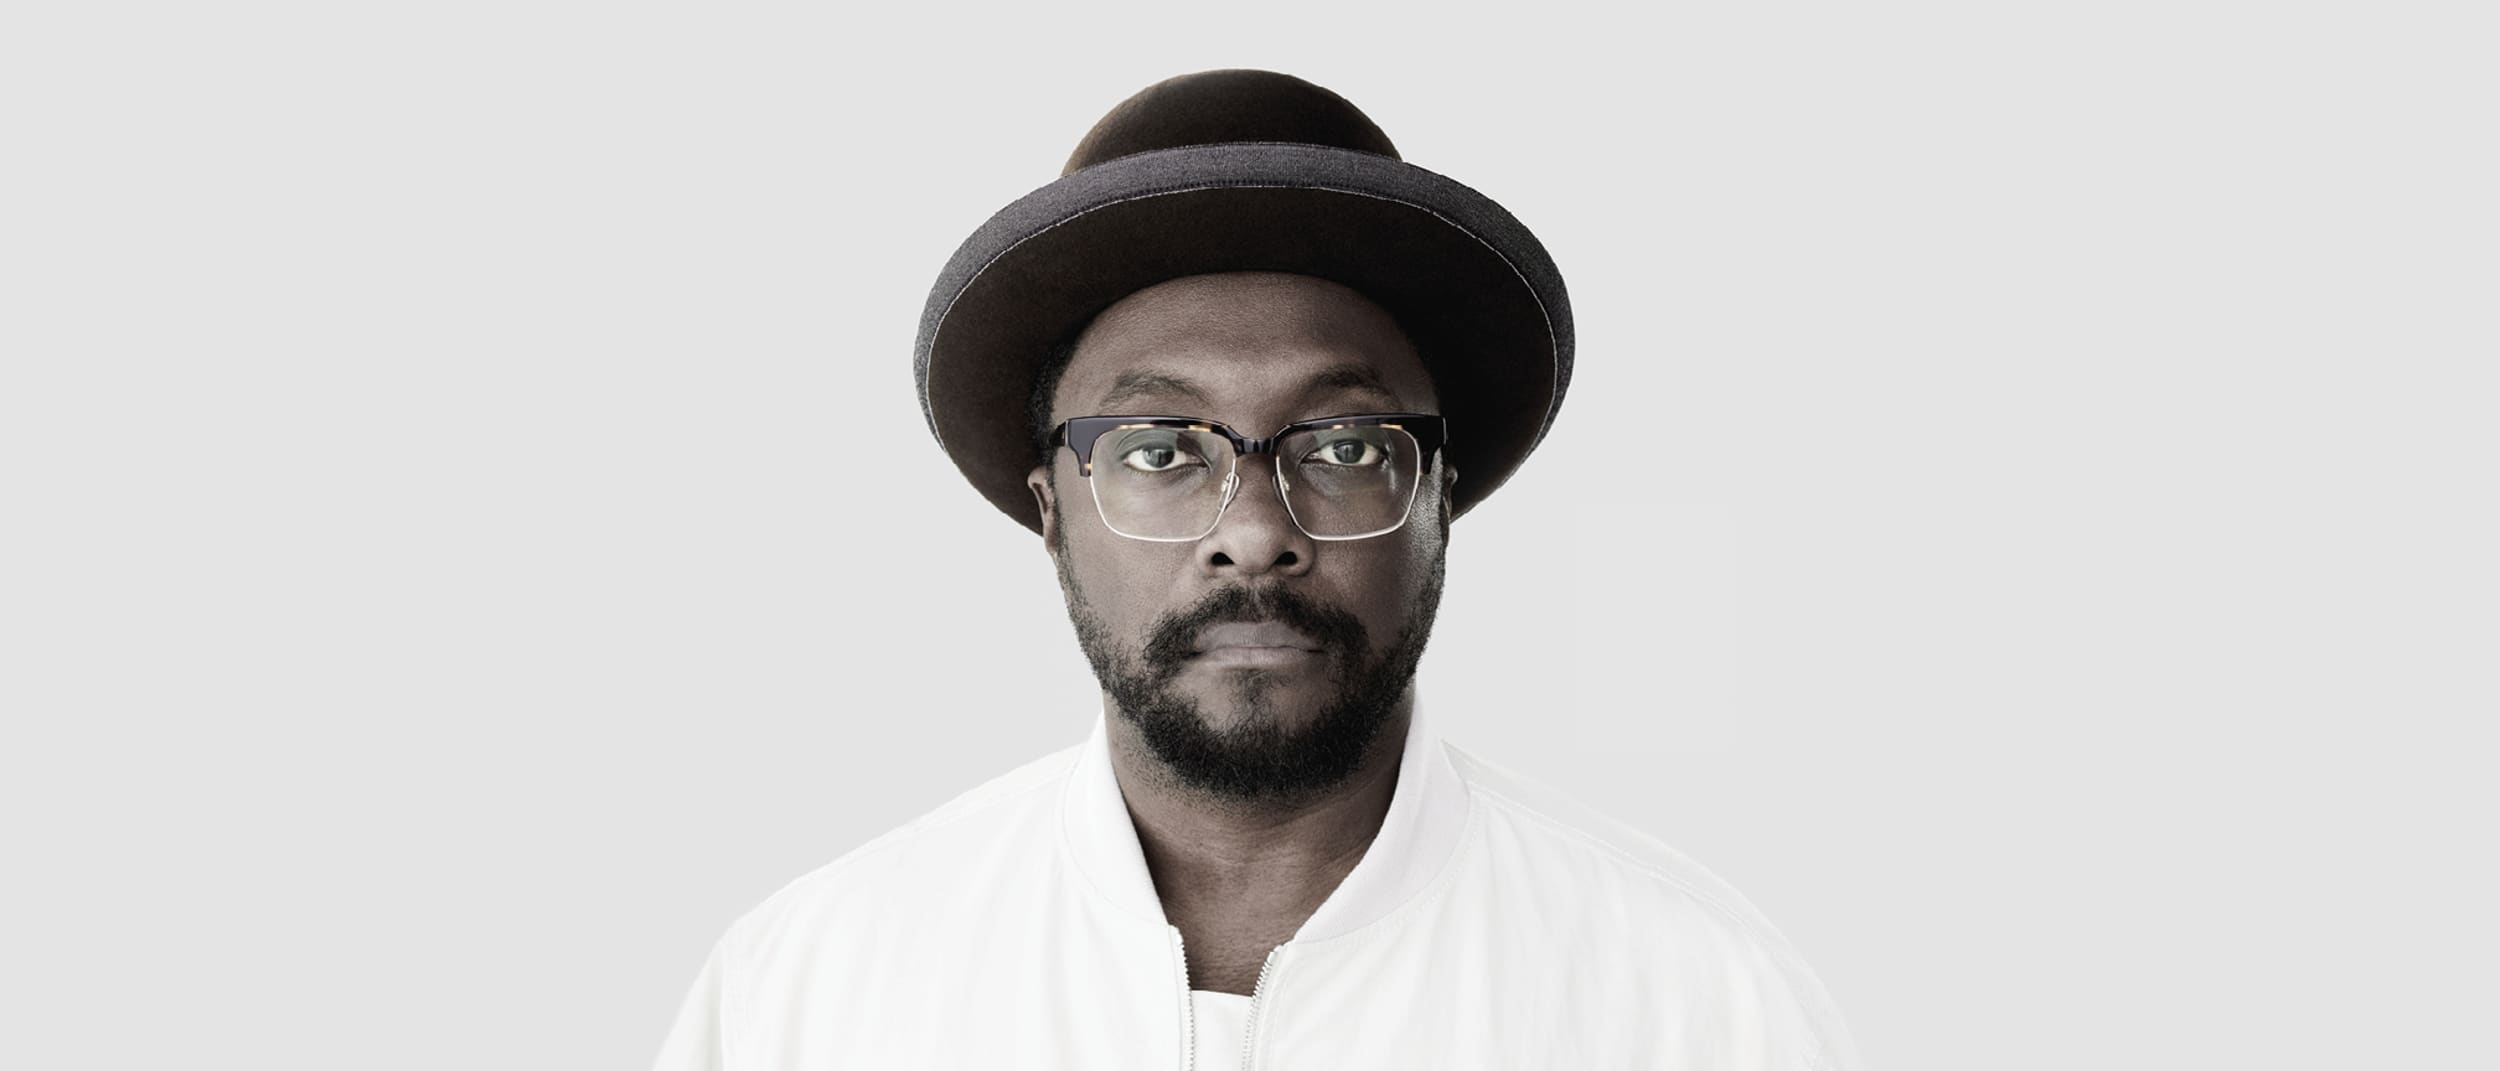 Specsavers: WILL.I.AM campaign